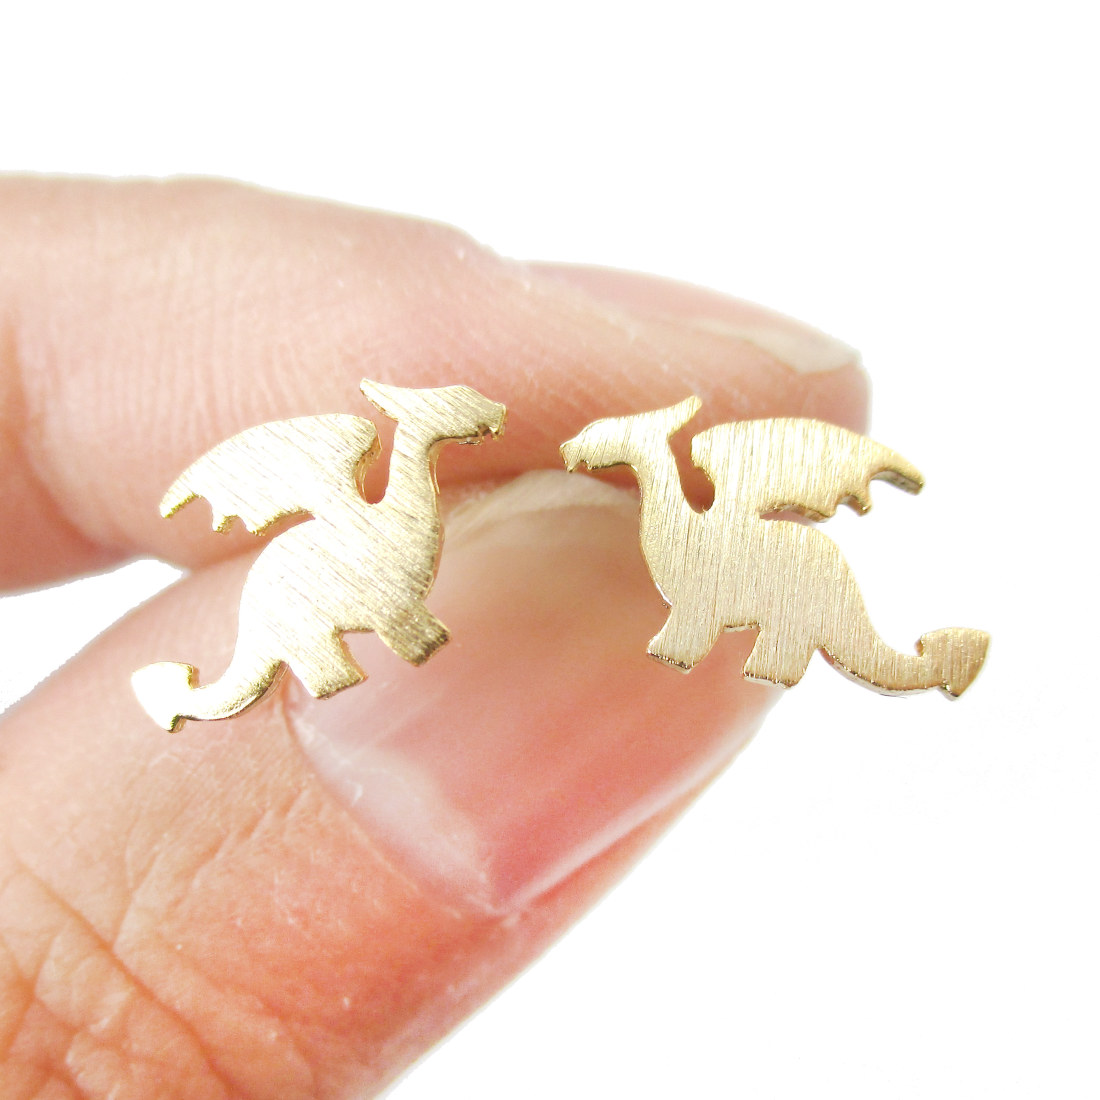 Mythical Creatures Dragon Shaped Silhouette Stud Earrings In Gold